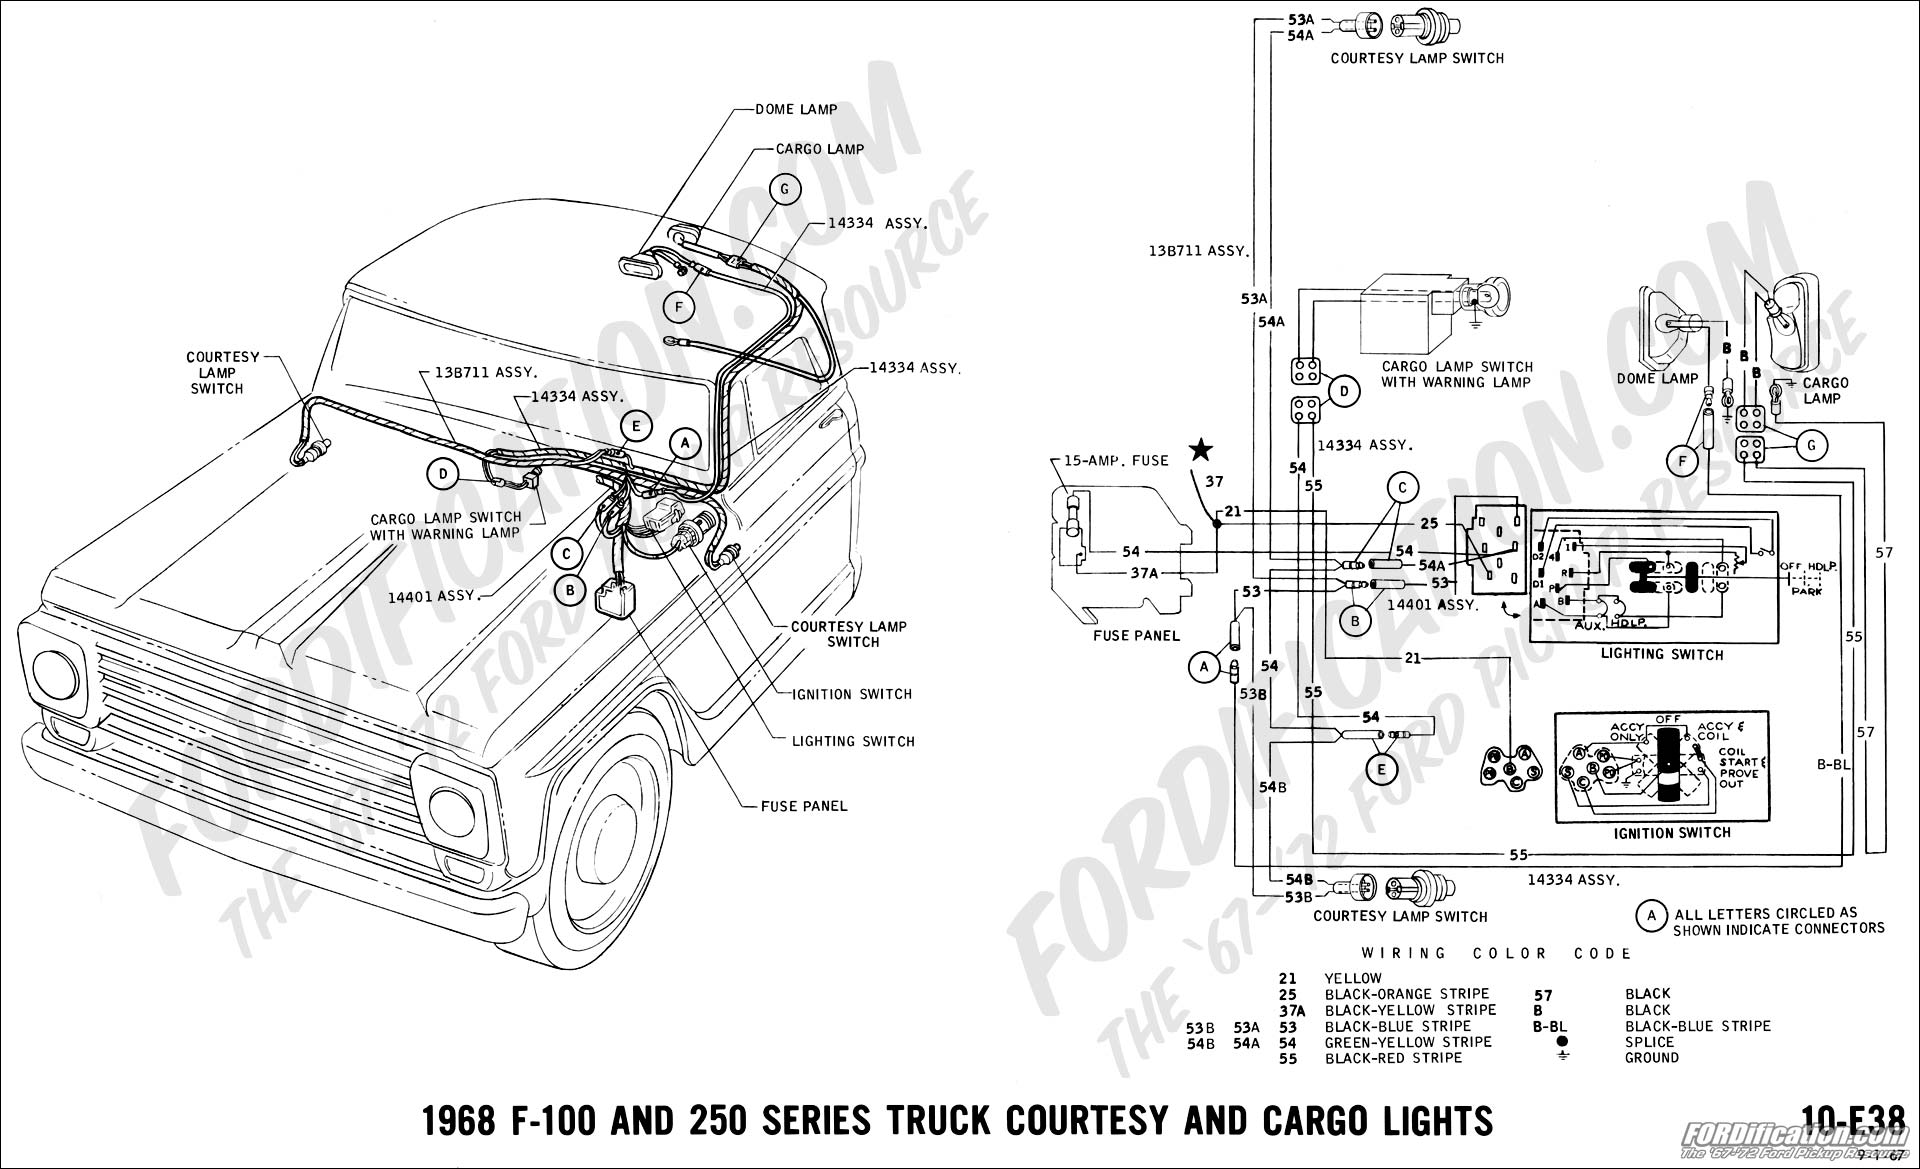 68 40 ford truck technical drawings and schematics section h wiring 1964 Ford Fairlane at crackthecode.co